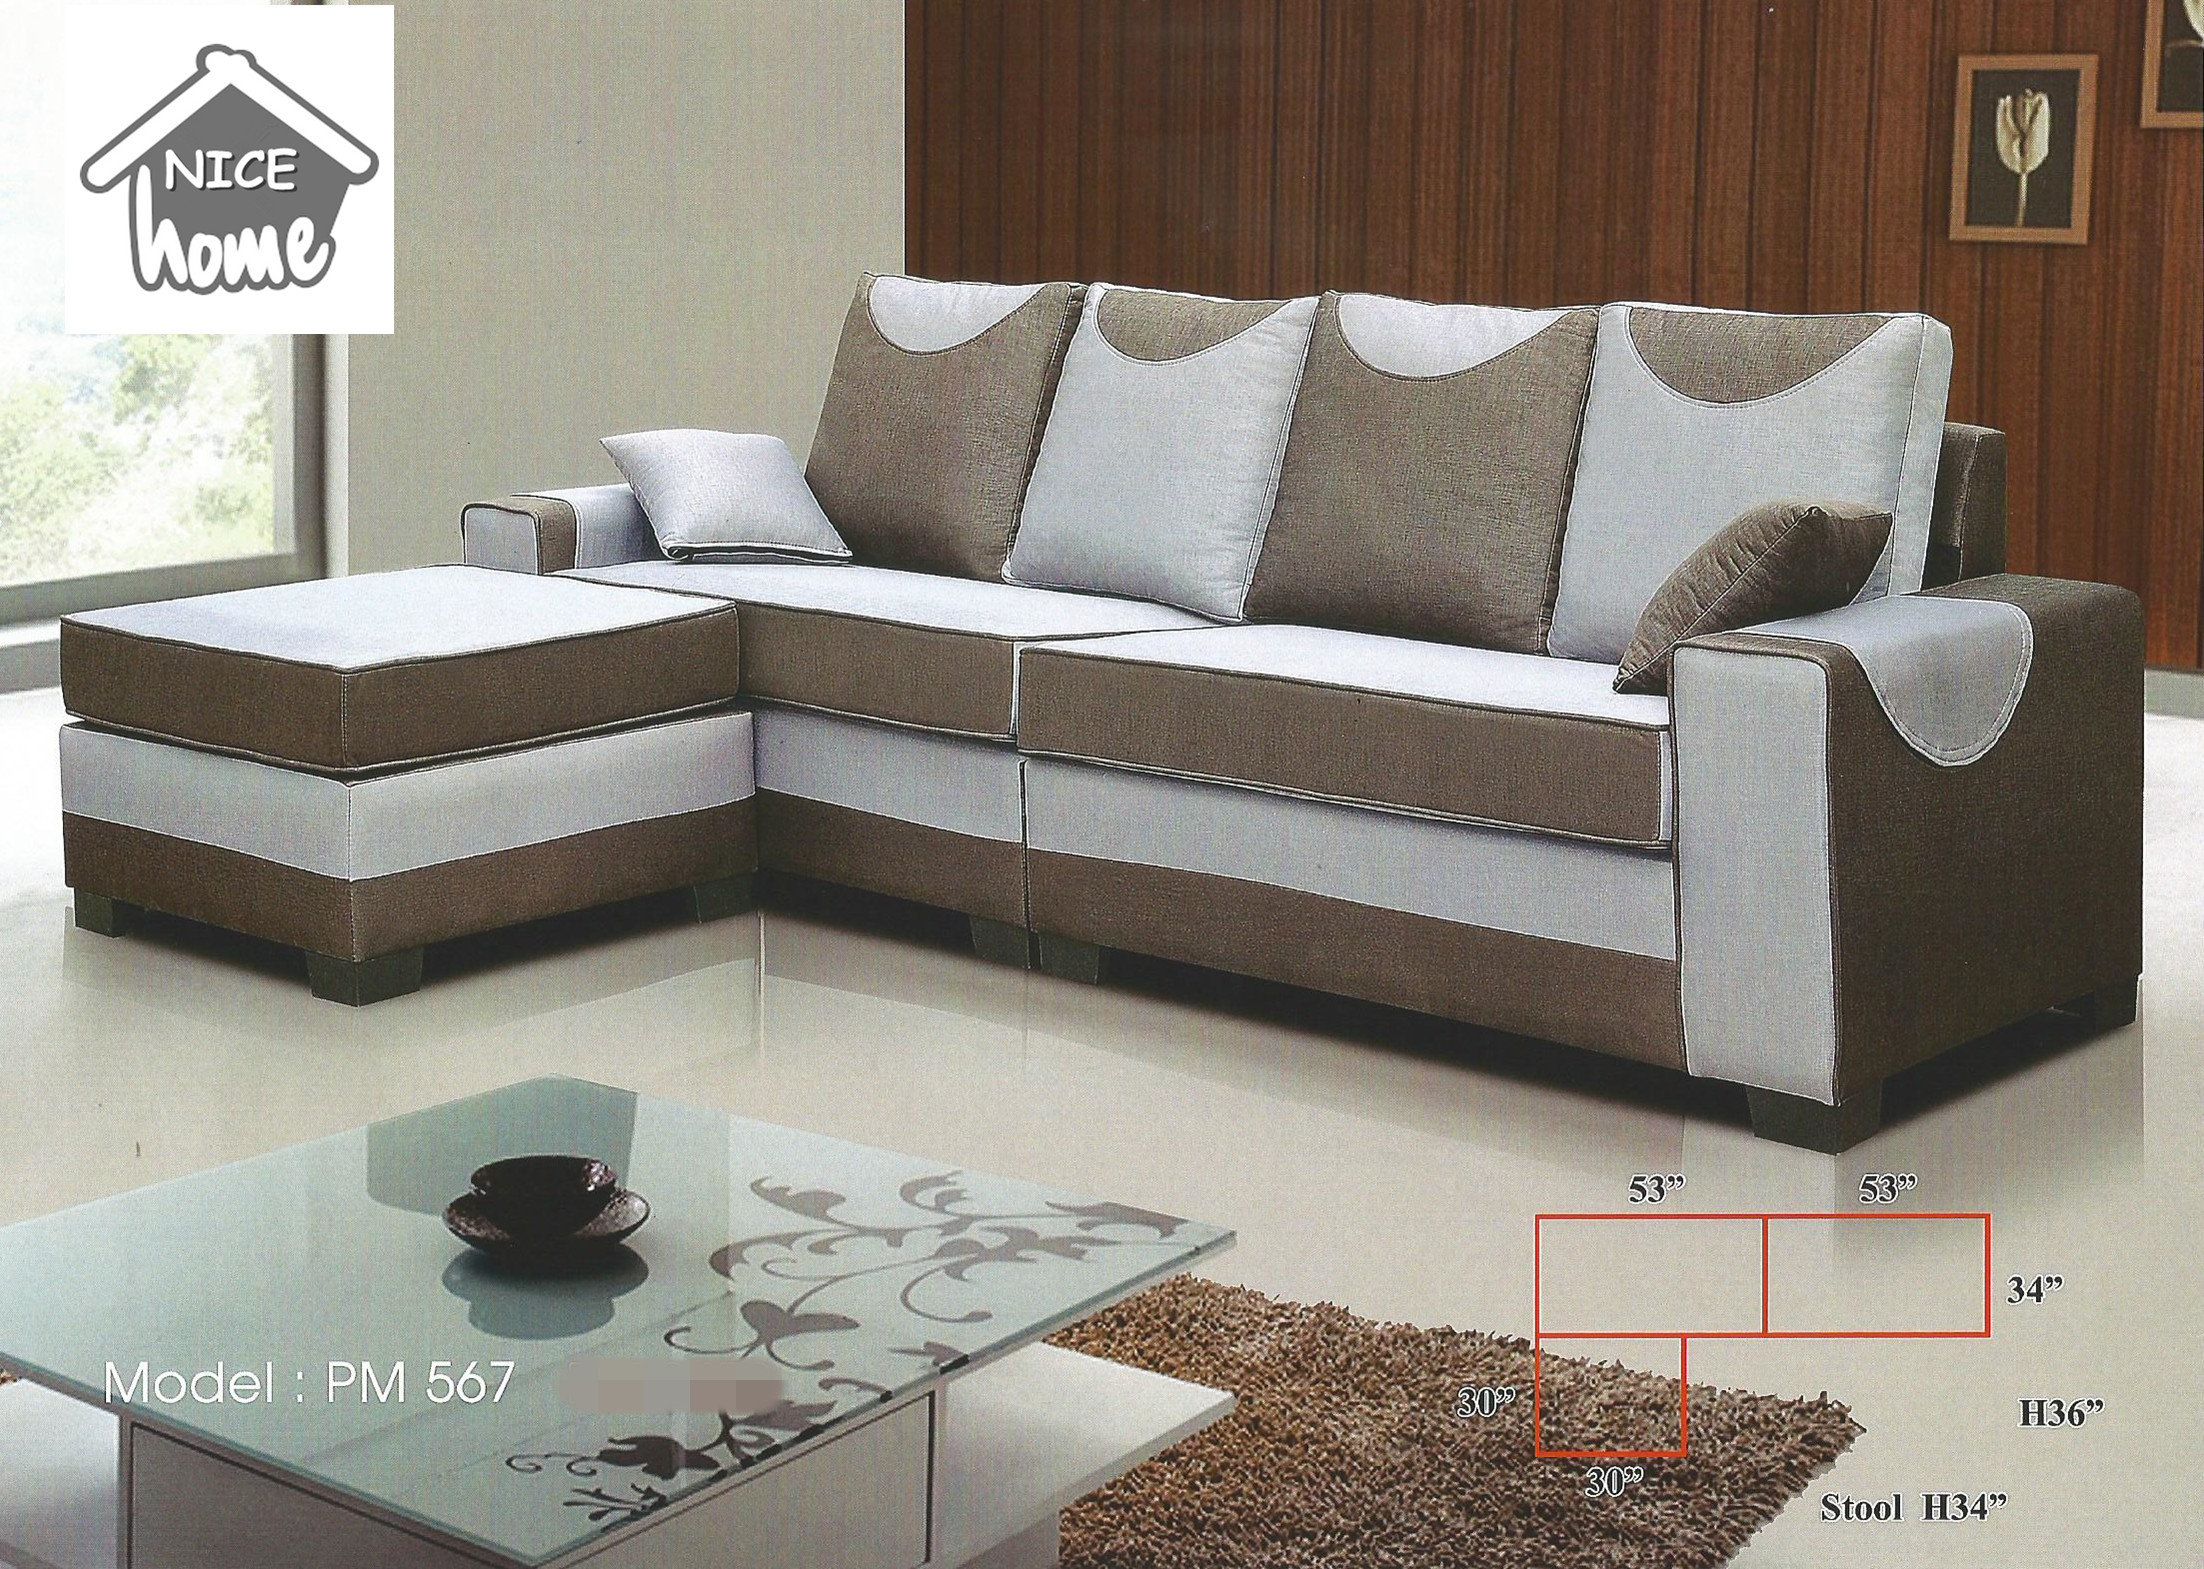 Sofa L Shape Untuk Ruang Tamu Kecil Low Price Installment Plan L Shape Sofa Model 567